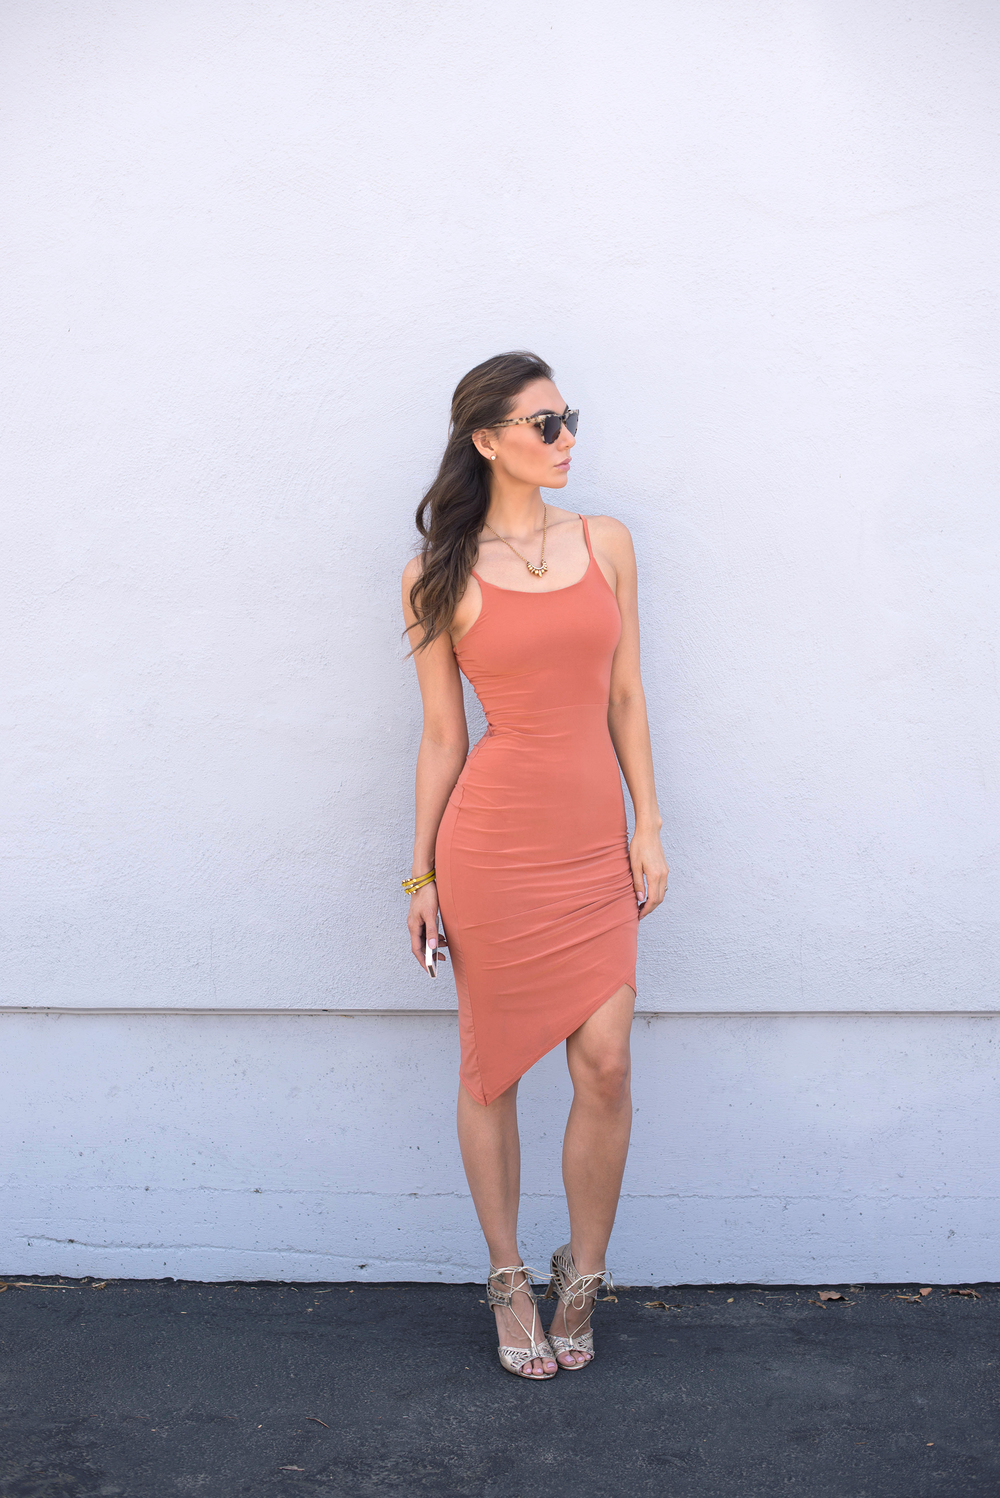 Komono sunglasses, pamela love necklace, and body conscious asymmetric dress